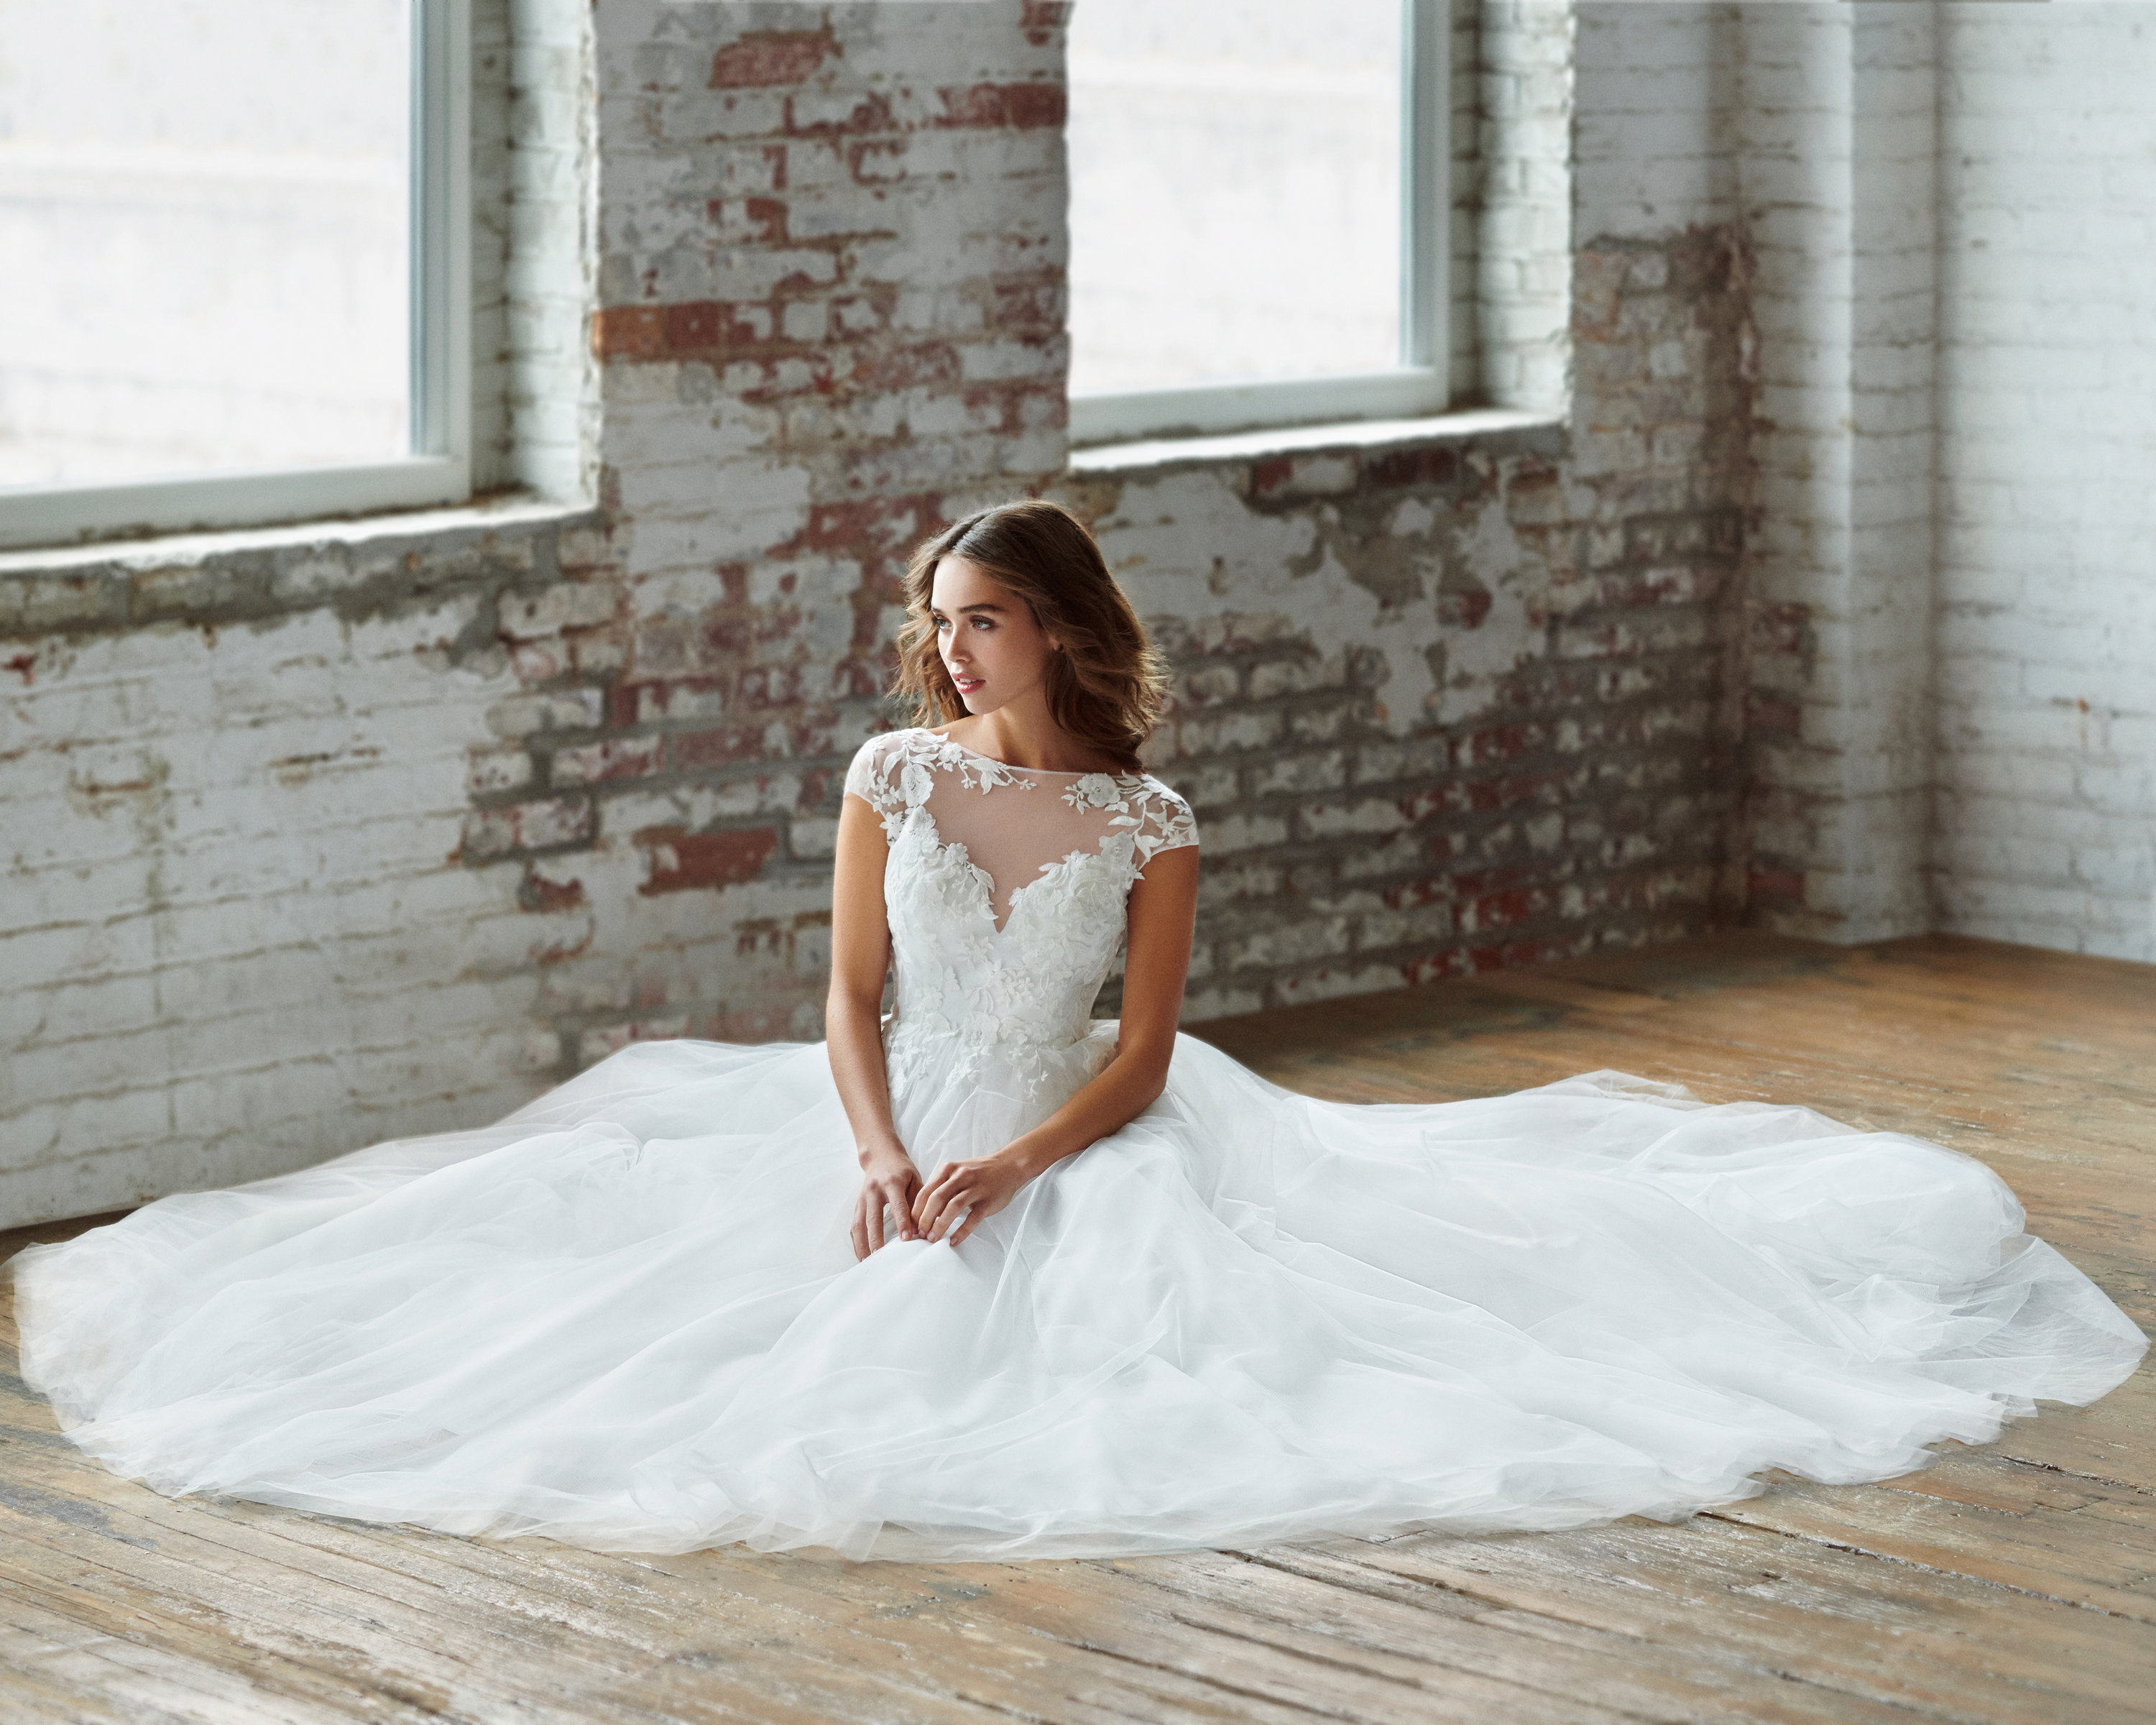 Bridal Gowns And Wedding Dresses By Jlm Couture Style 7859 Jolie Clothing Dakota Long Dress Ti Adora Allison Webb Gown